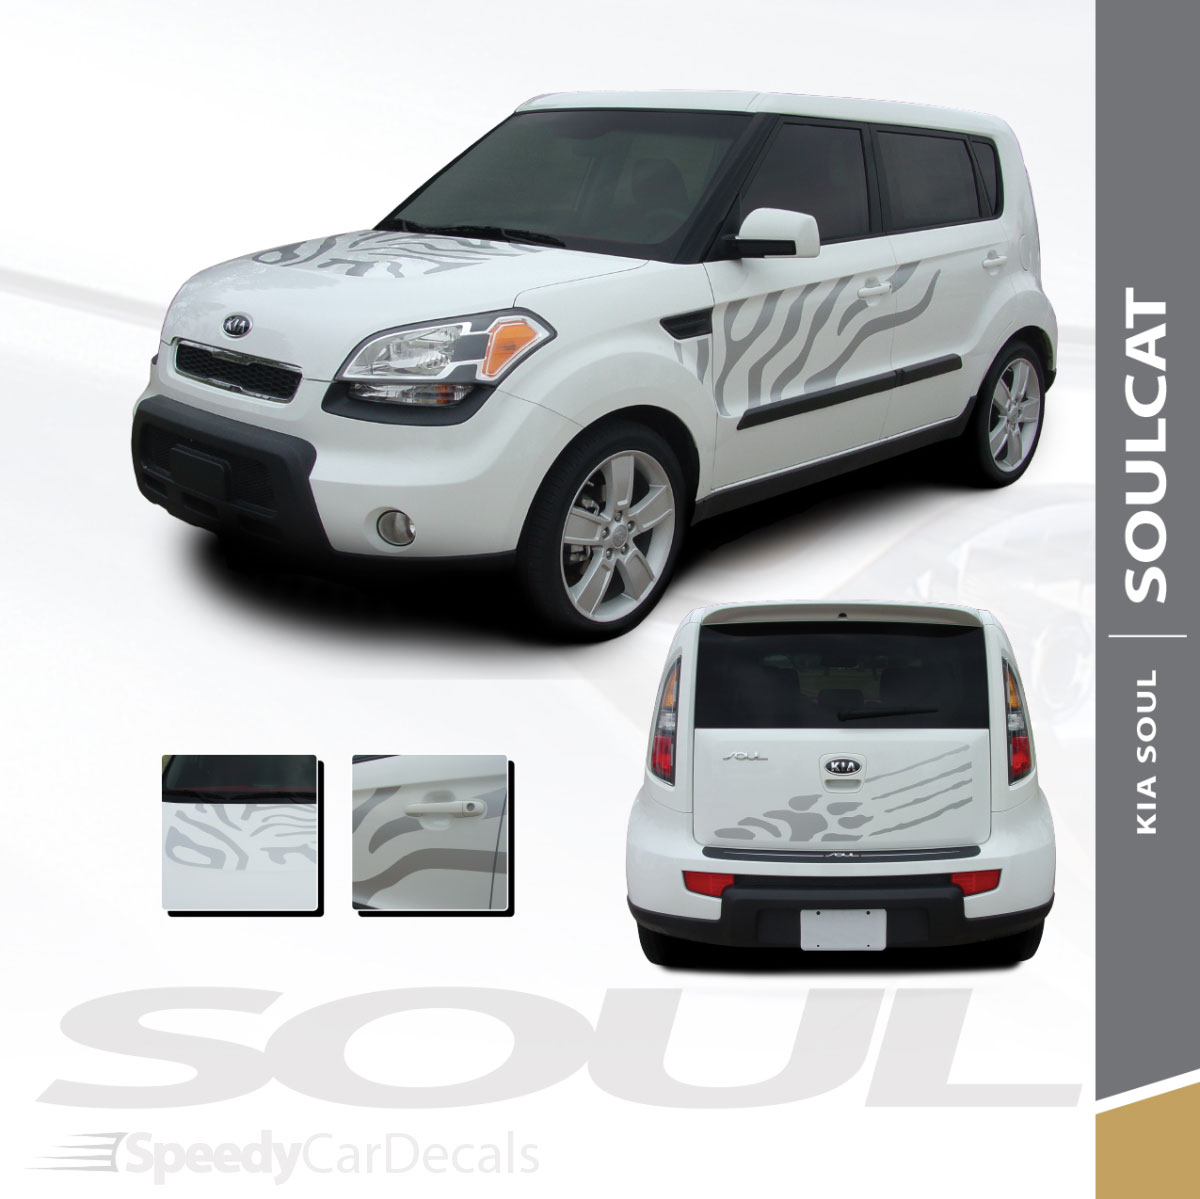 Rocker Side stripe stripes decal decals graphics fit any Kia Soul 2010 up